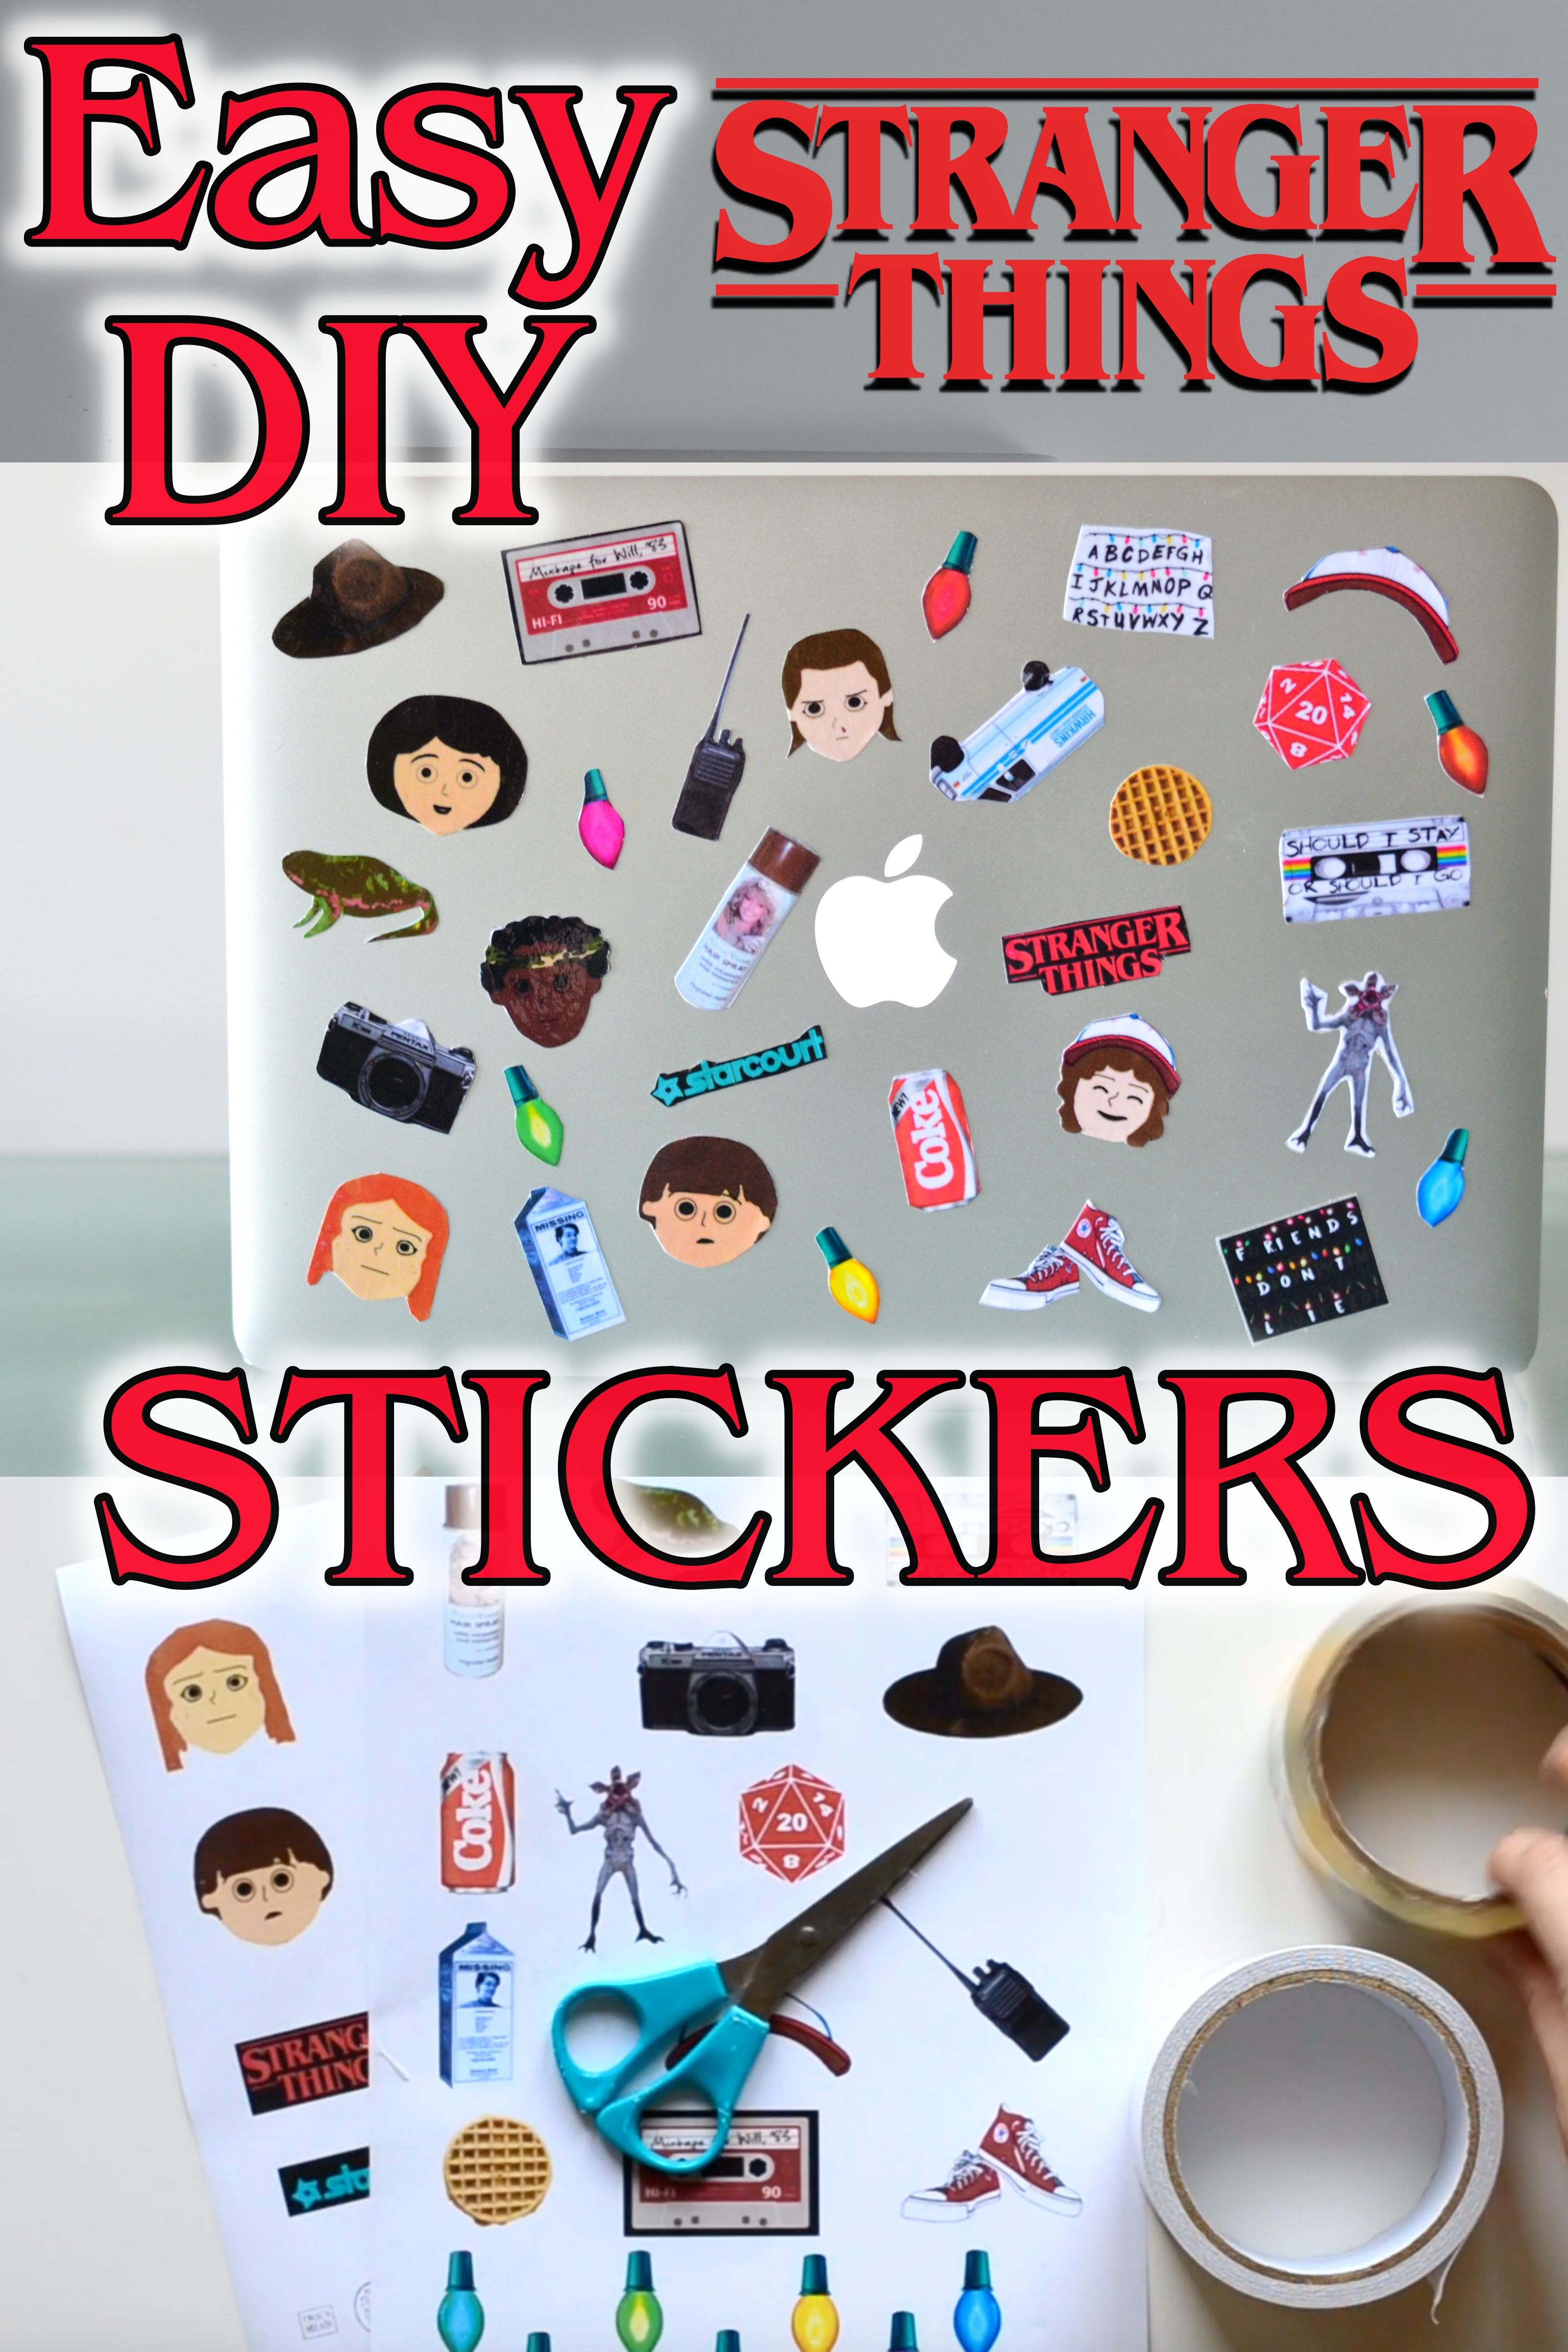 Diy Stranger Things Stickers For Phone Case Or Laptop